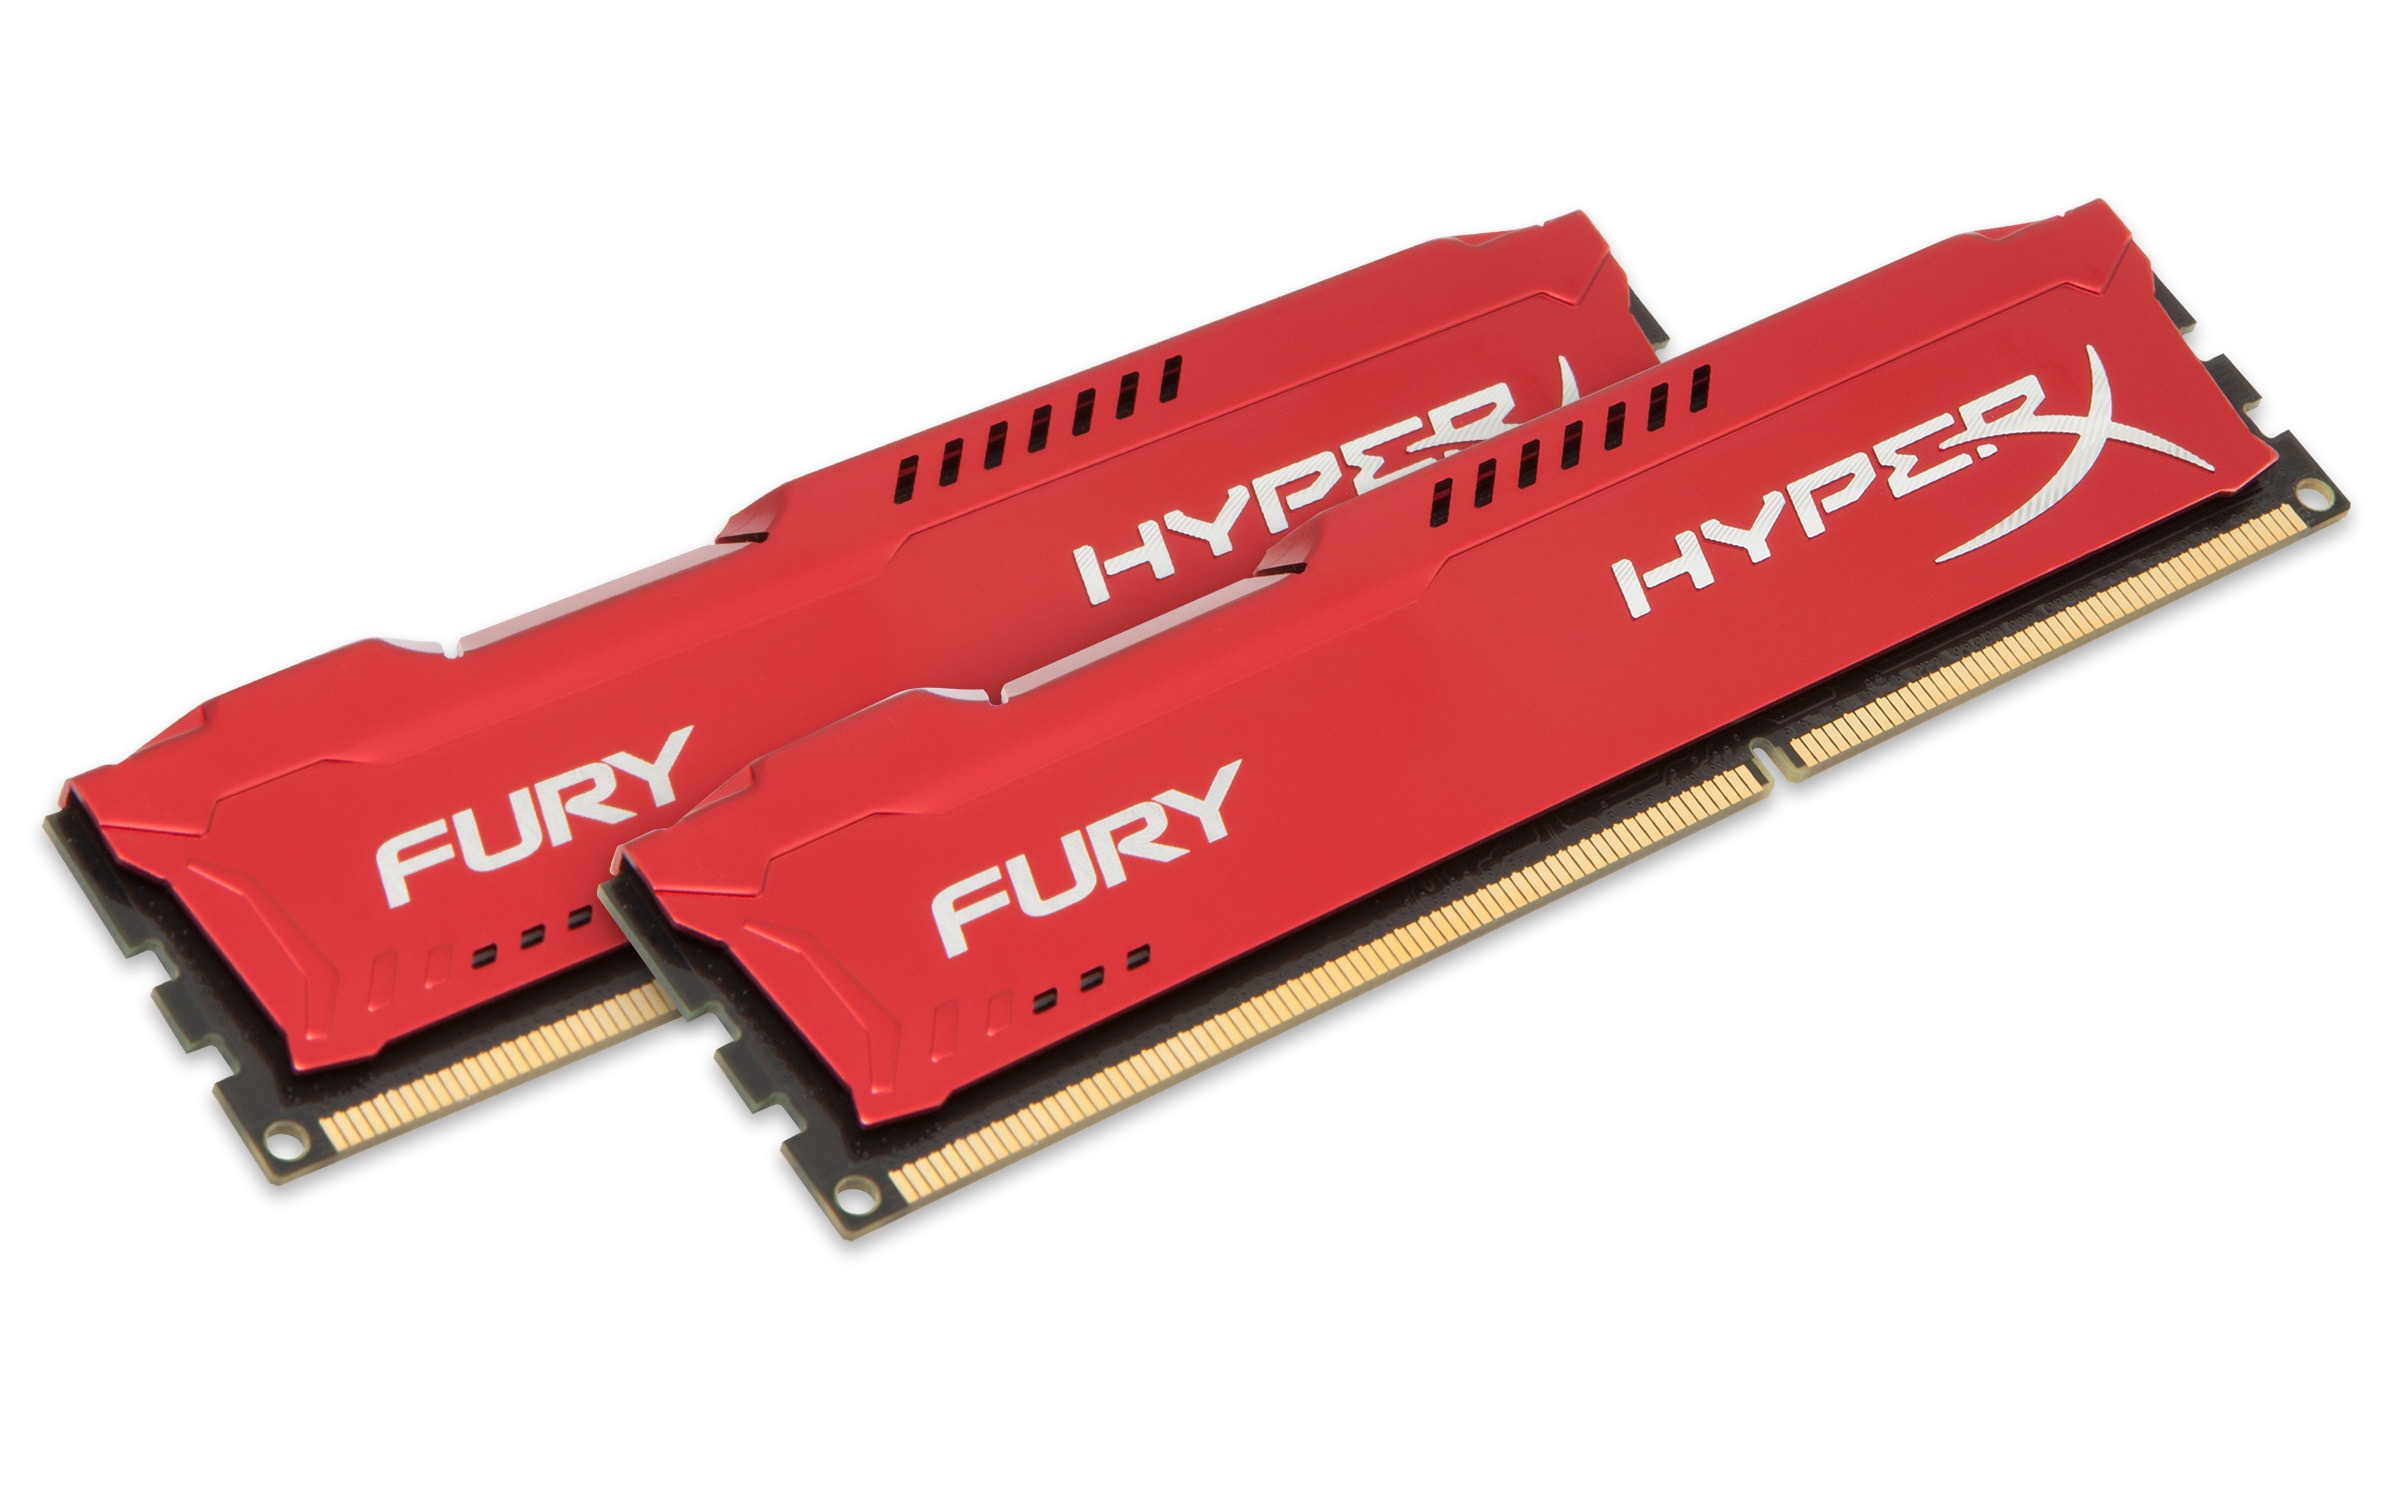 DIMM DDR3 16GB 1866MHz CL10 (Kit of 2) KINGSTON HyperX FURY Red